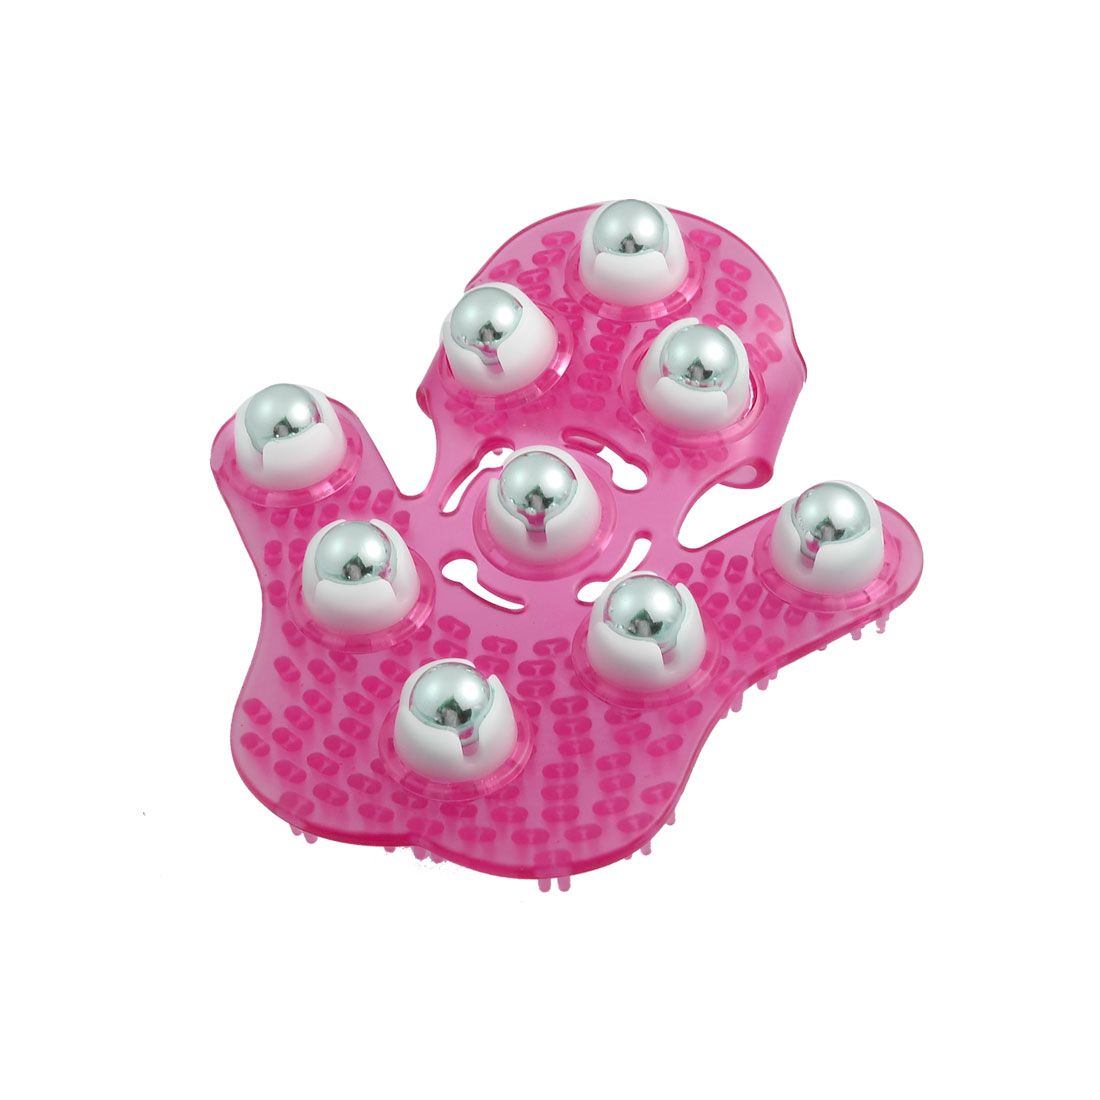 Fuchsia Plastic 9 Metal Rolling Balls Manual Body Care Massage Glove Massager